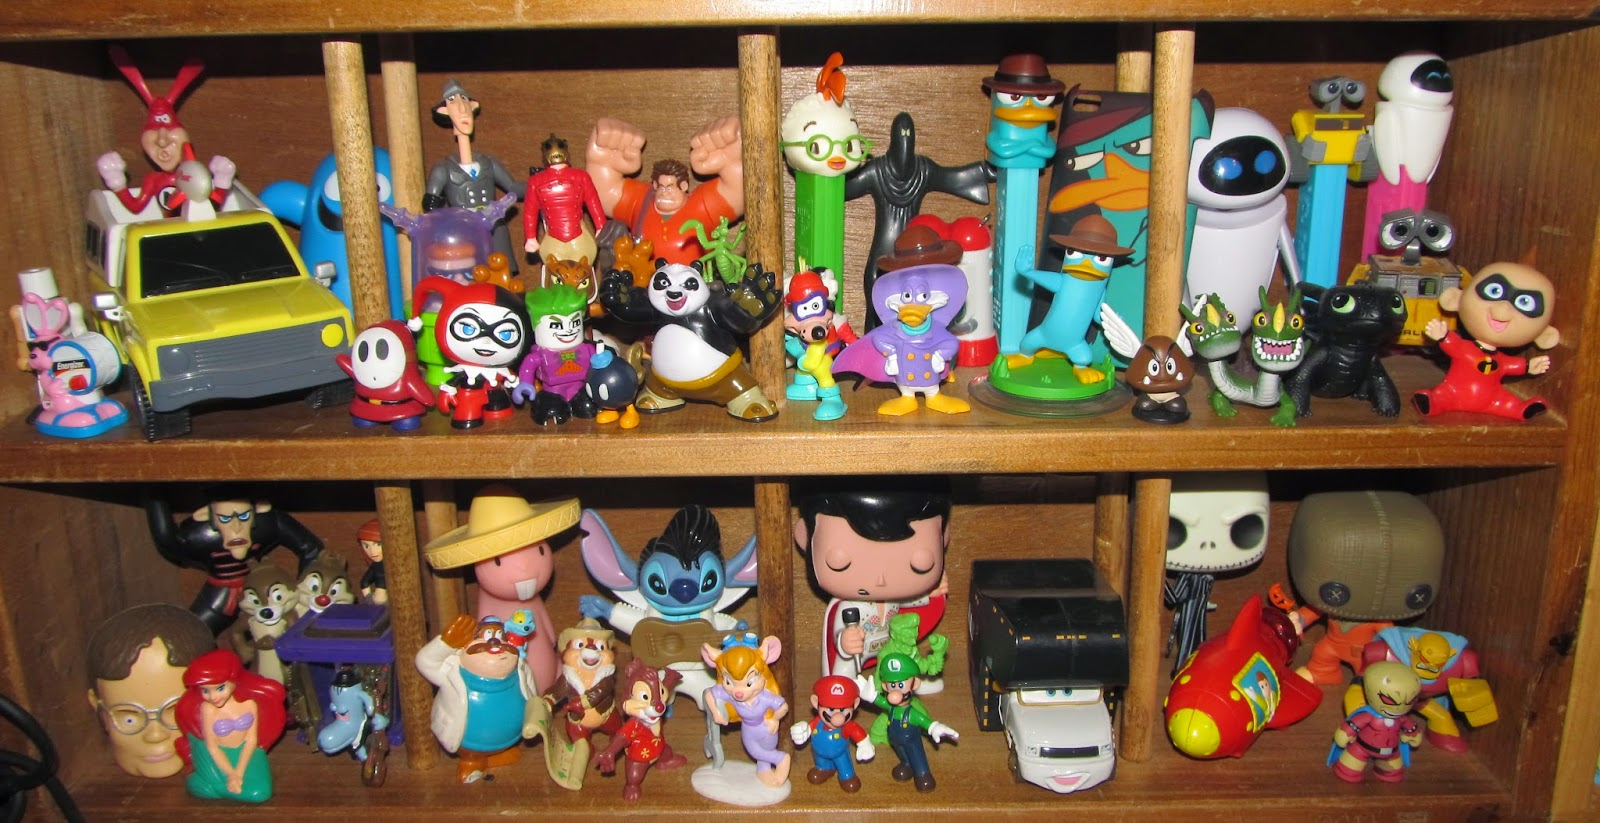 80 Toy Action Figure Shelves - IMG_3247_Great 80 Toy Action Figure Shelves - IMG_3247  HD_75658.JPG